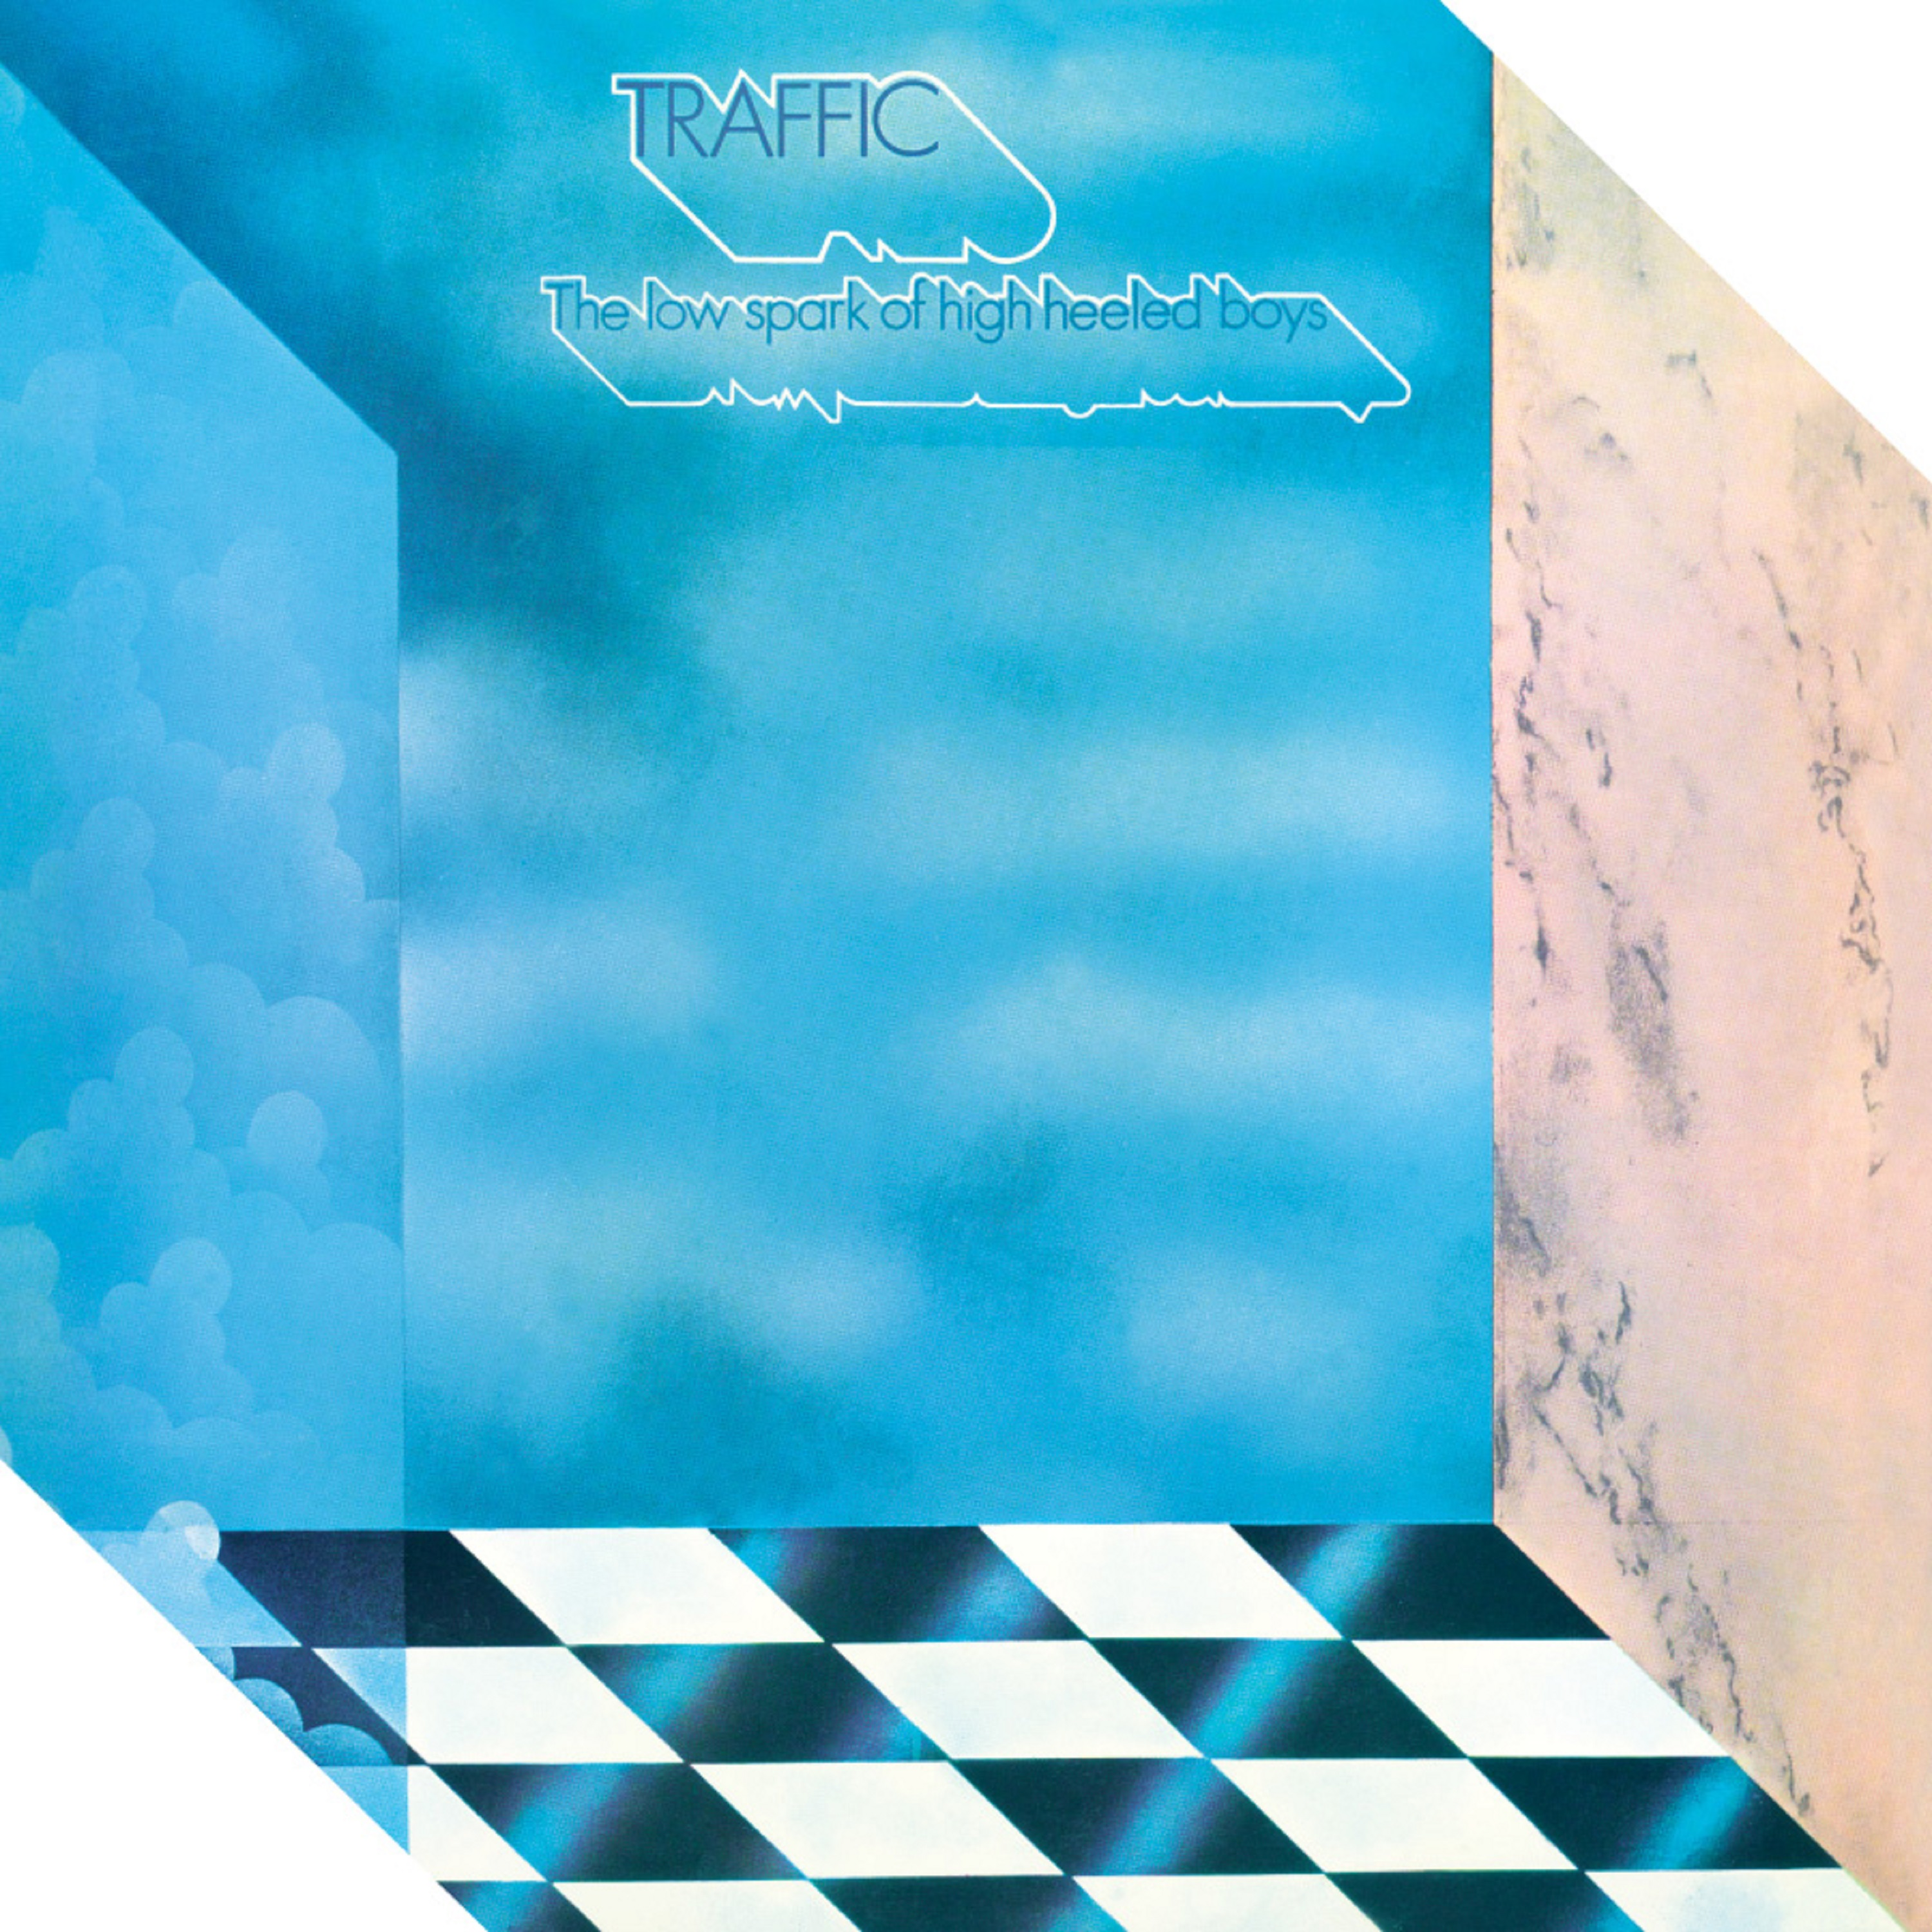 Traffic - The Low Spark Of High Heeled Boys (180 Gram Translucent Blue Audiophile Vinyl/Limited Edition/Die-Cut Cover)